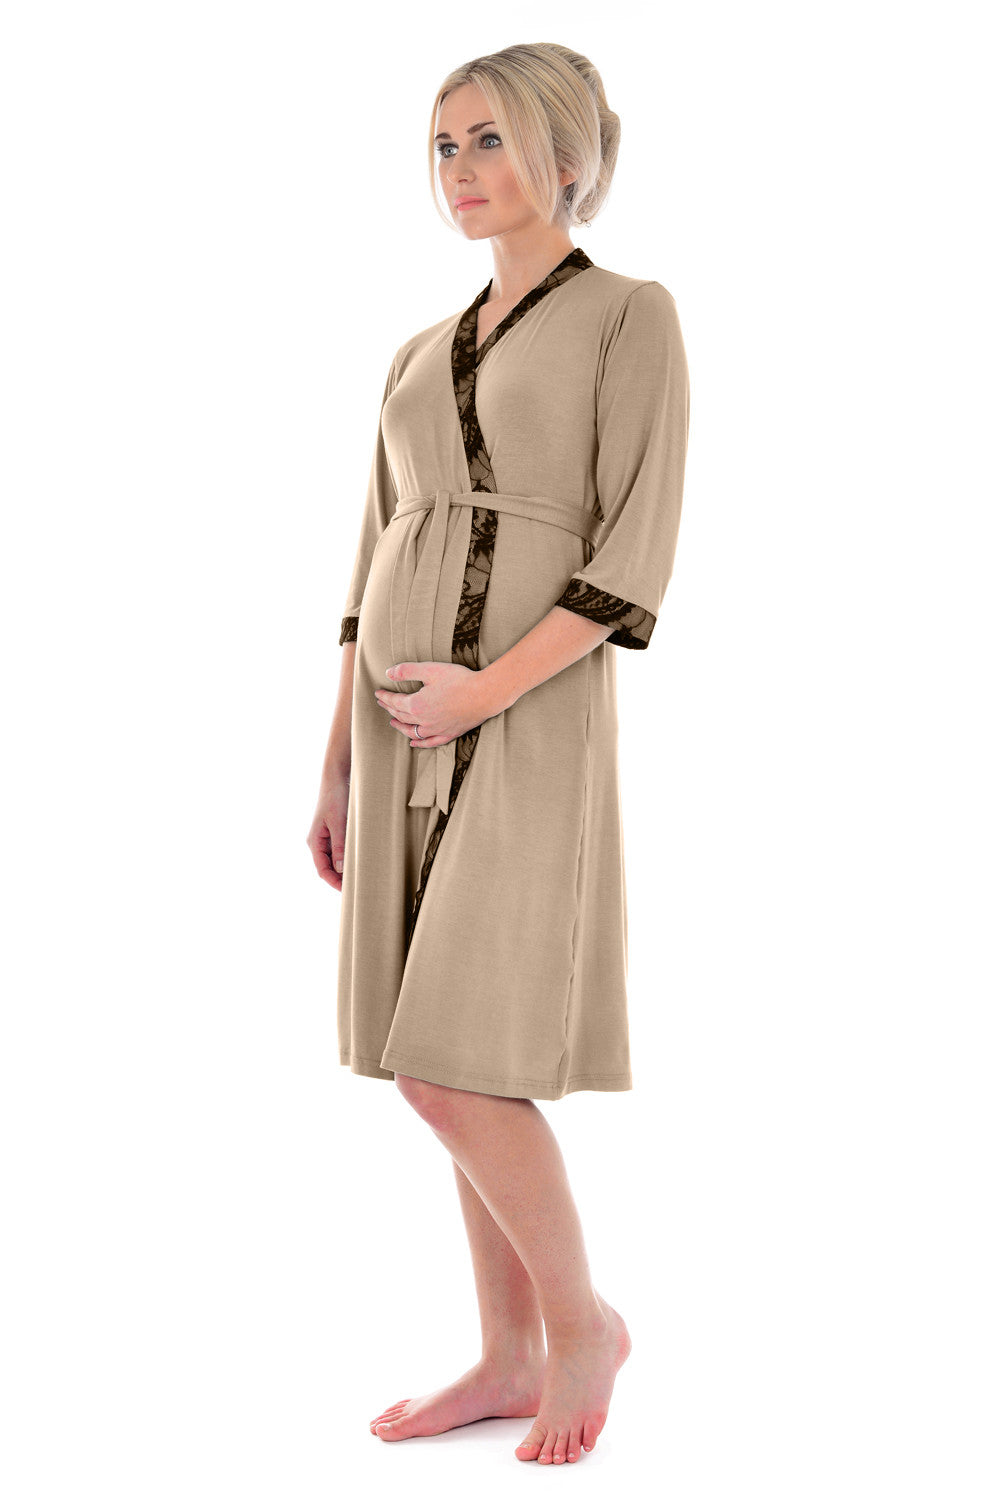 369719c0506 ... MamaMoosh Indulgence Maternity Dressing Gown Mink ...